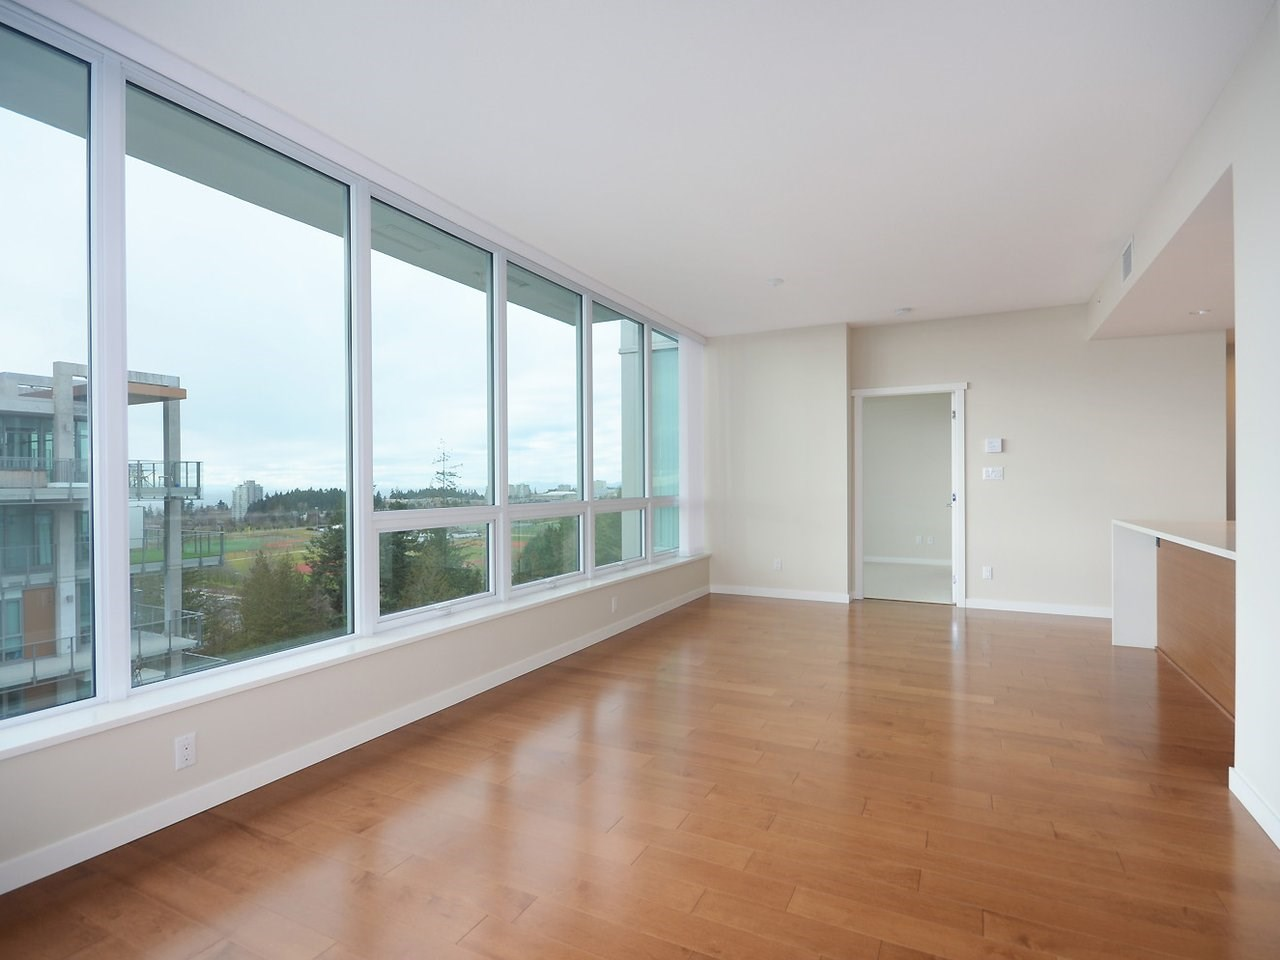 Condo Apartment at 2005 5728 BERTON AVENUE, Unit 2005, Vancouver West, British Columbia. Image 10